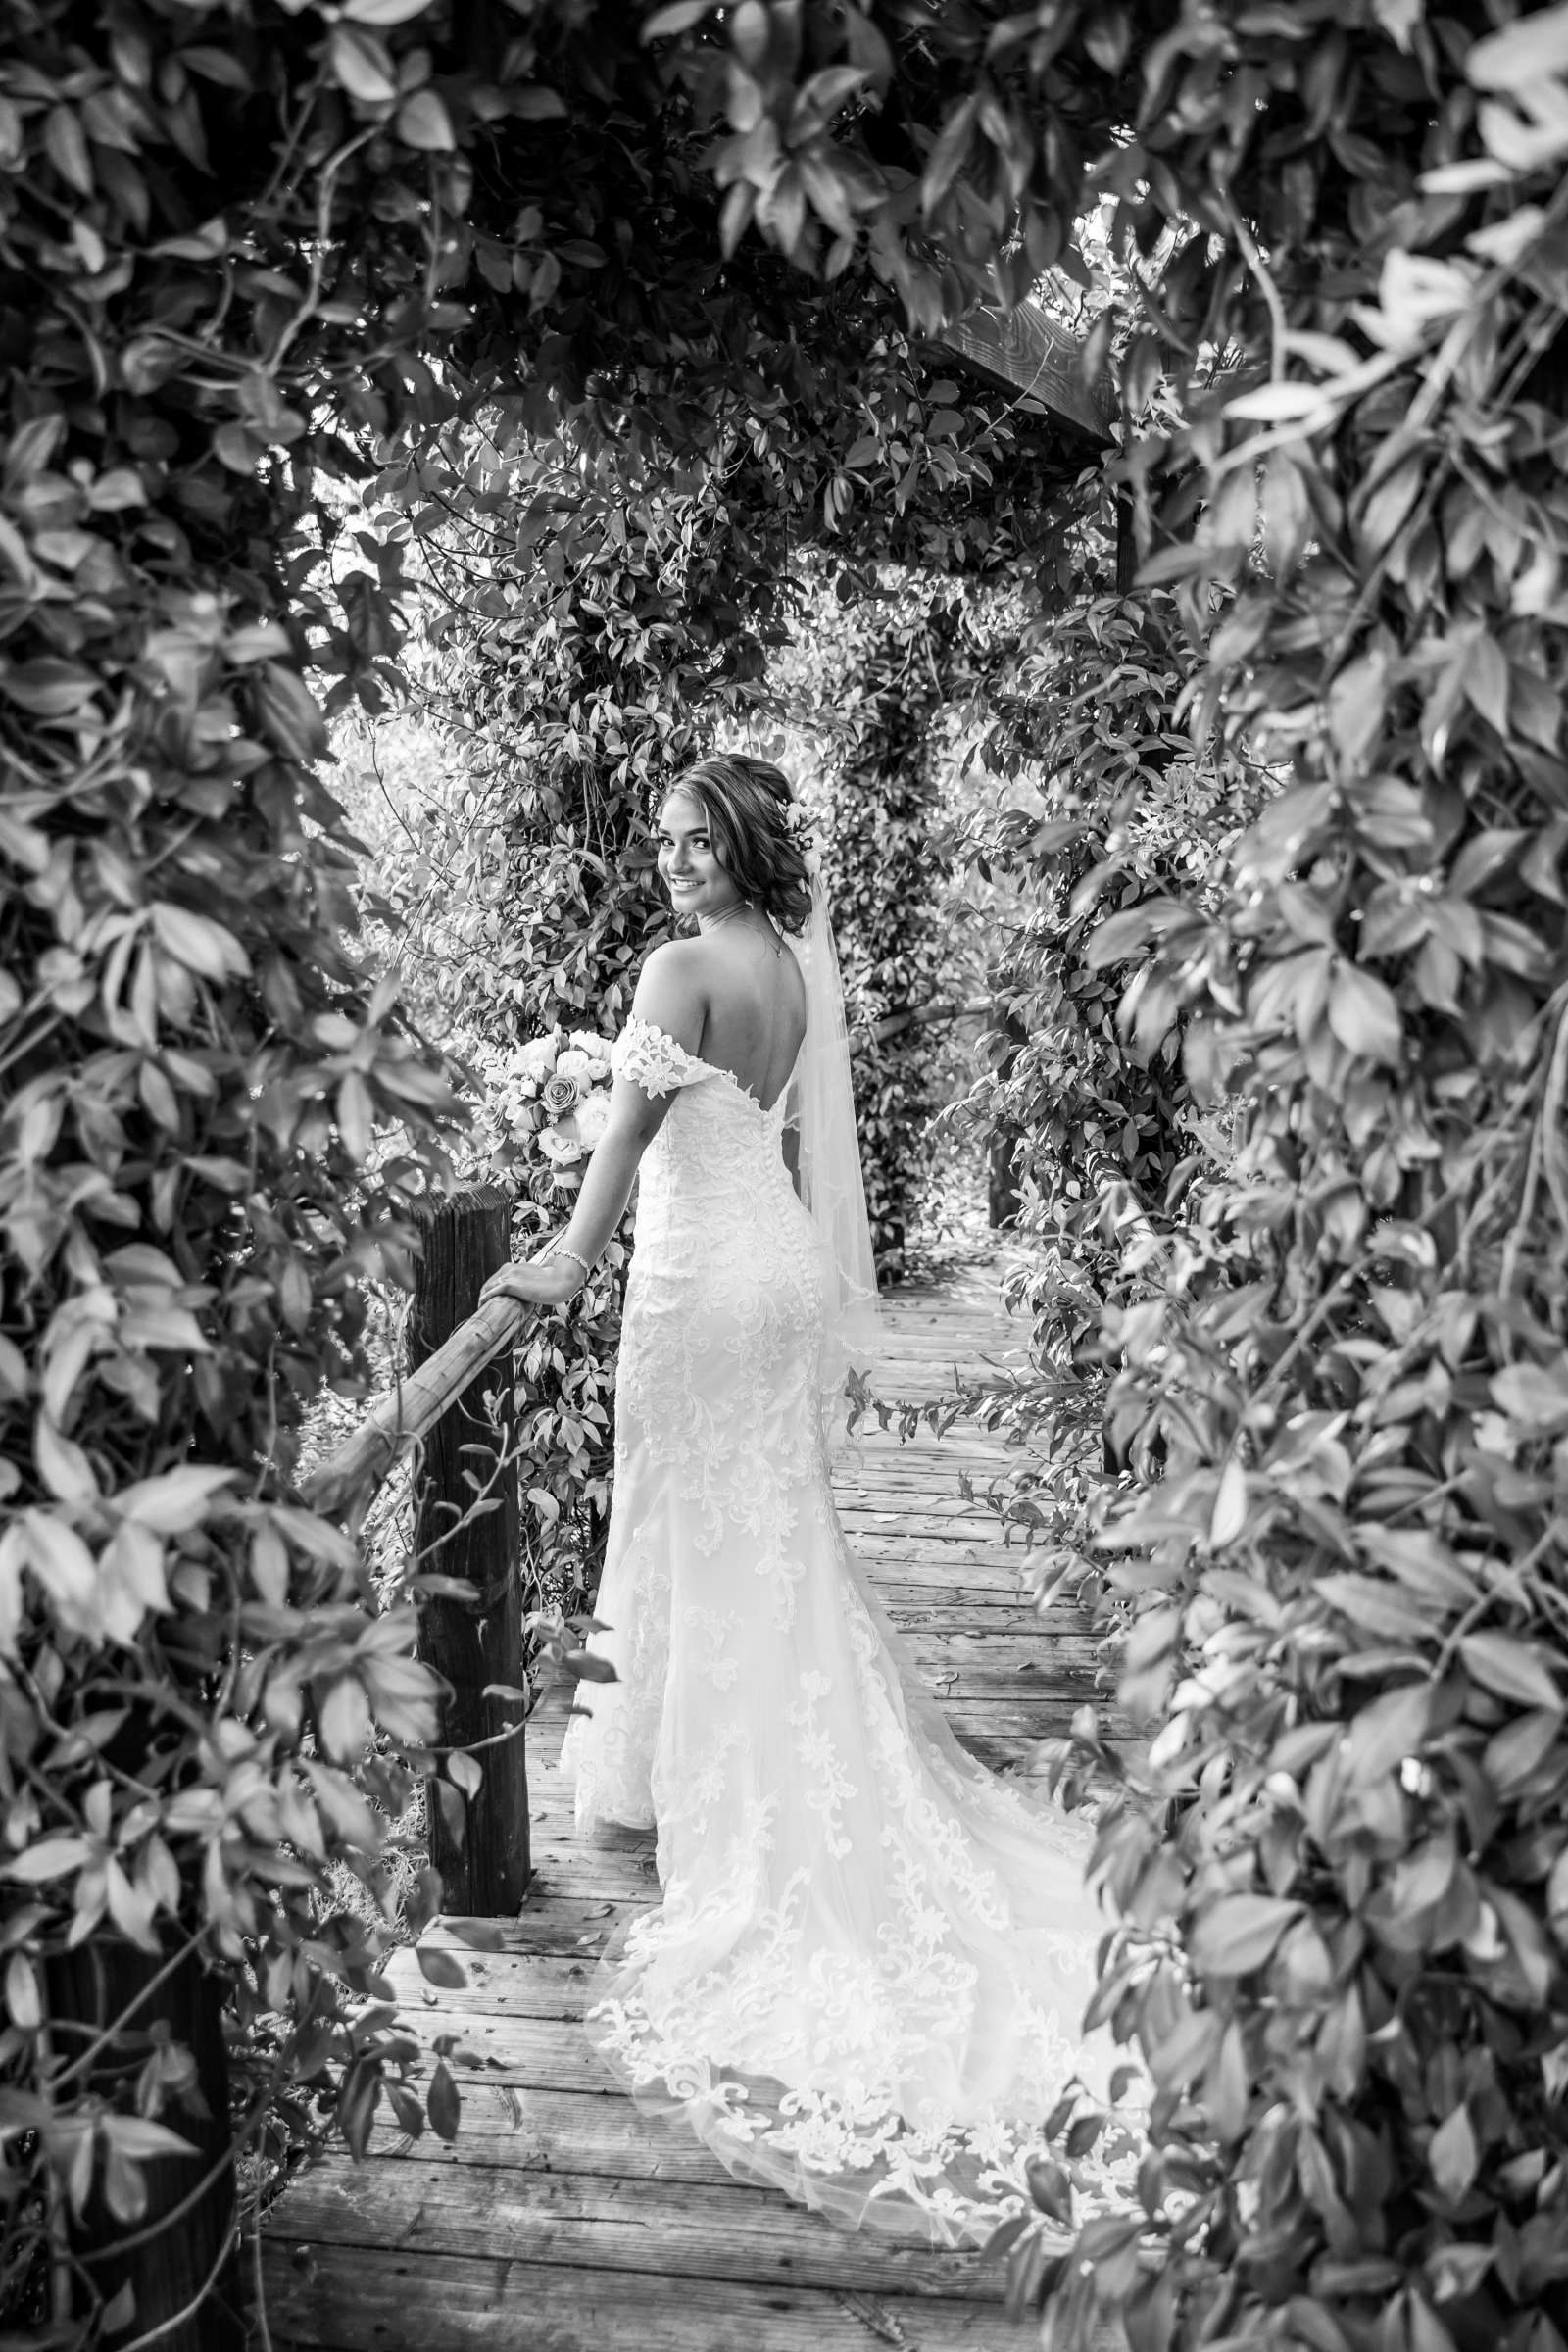 Ethereal Gardens Wedding, Danielle and Ben Wedding Photo #40 by True Photography